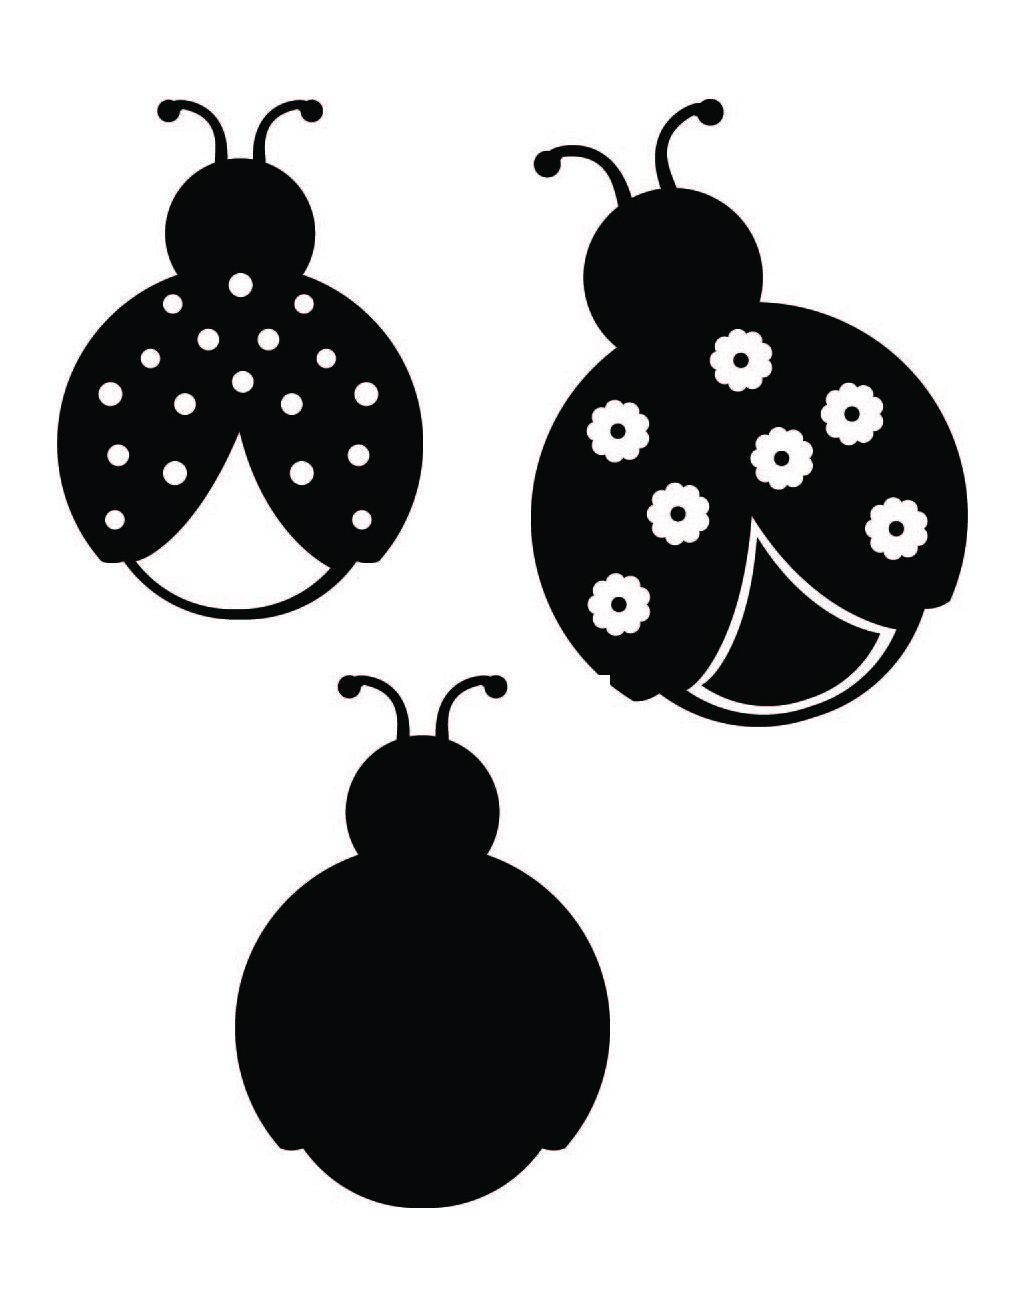 Ladybug clipart silhouette. Free svg files of